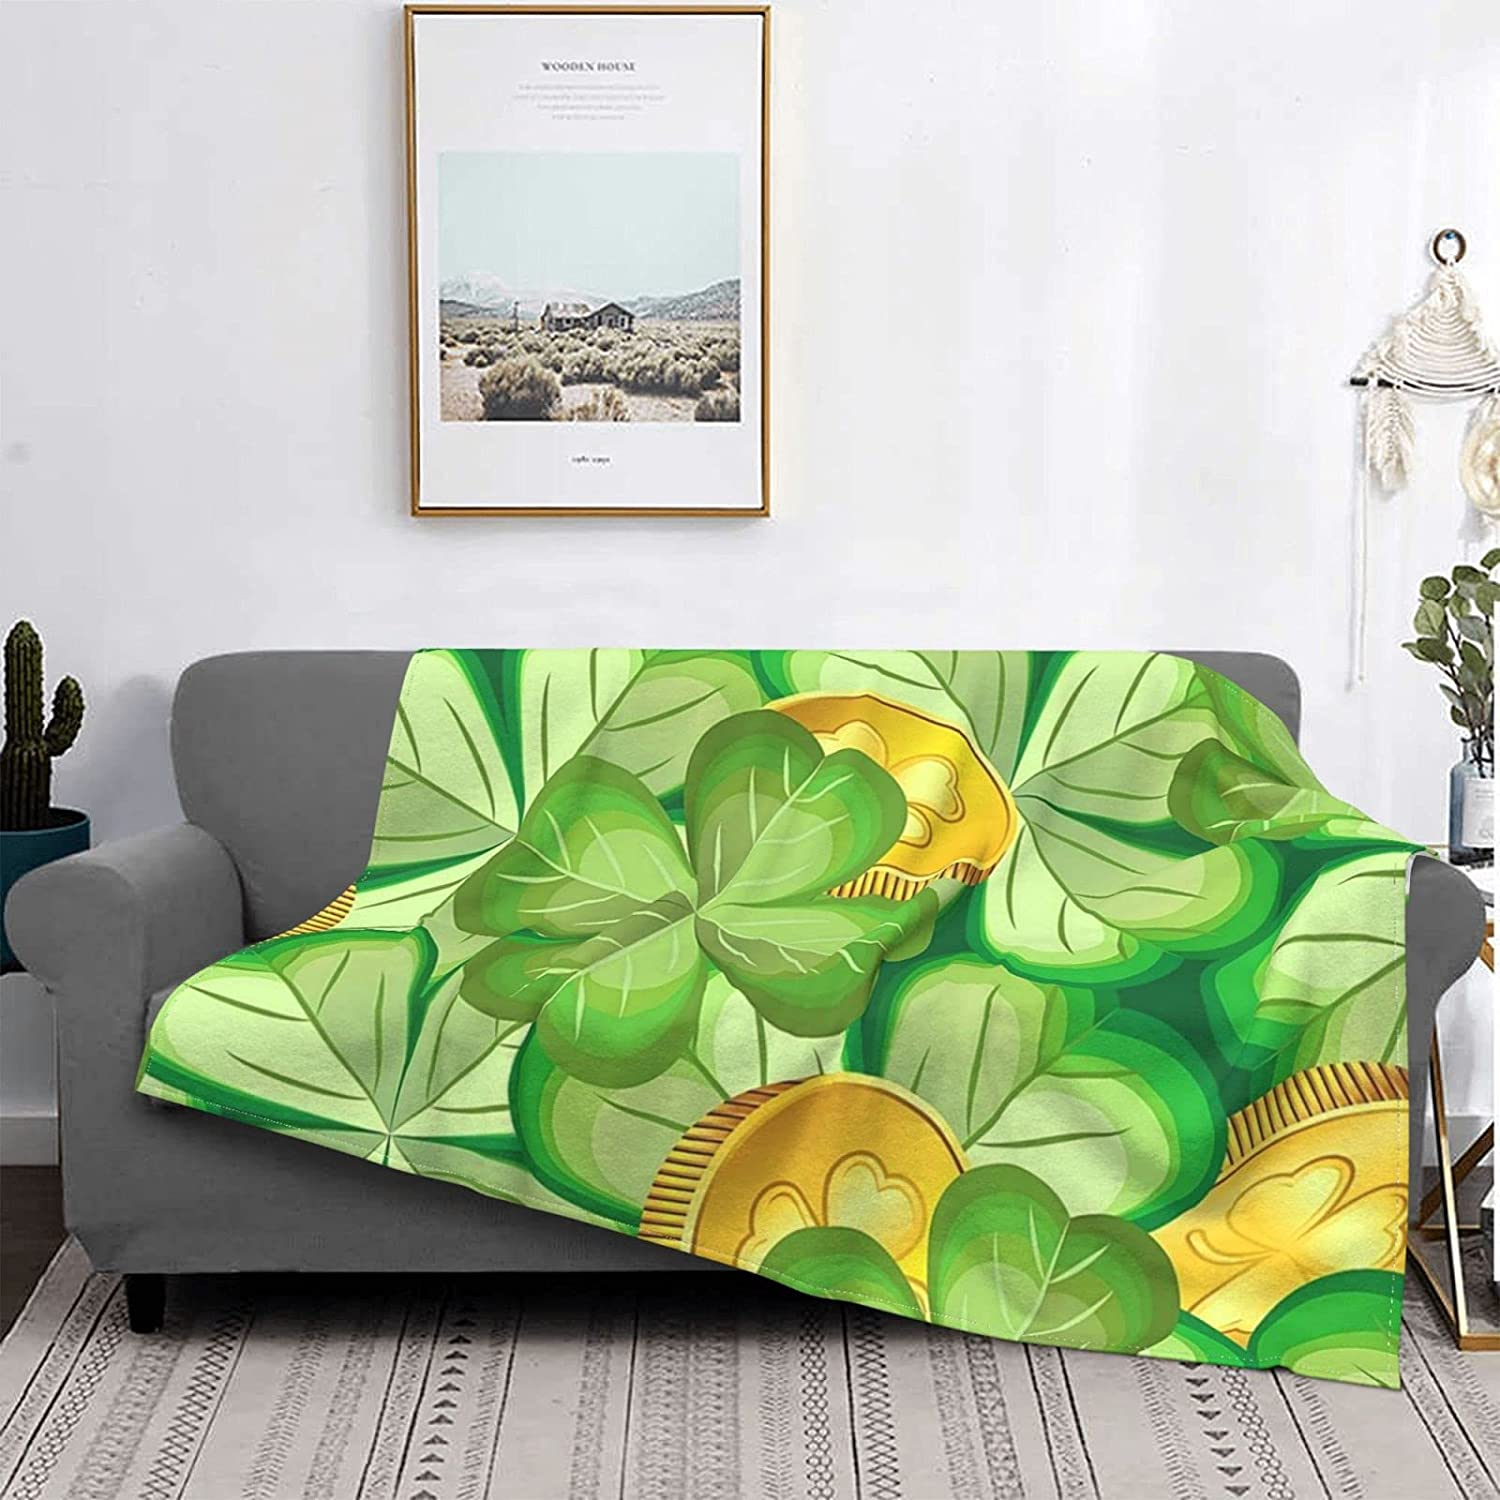 WSYC Ultra-Soft Micro Fleece Blanket Max 63% OFF for Four Couch Sale Clover Leaf